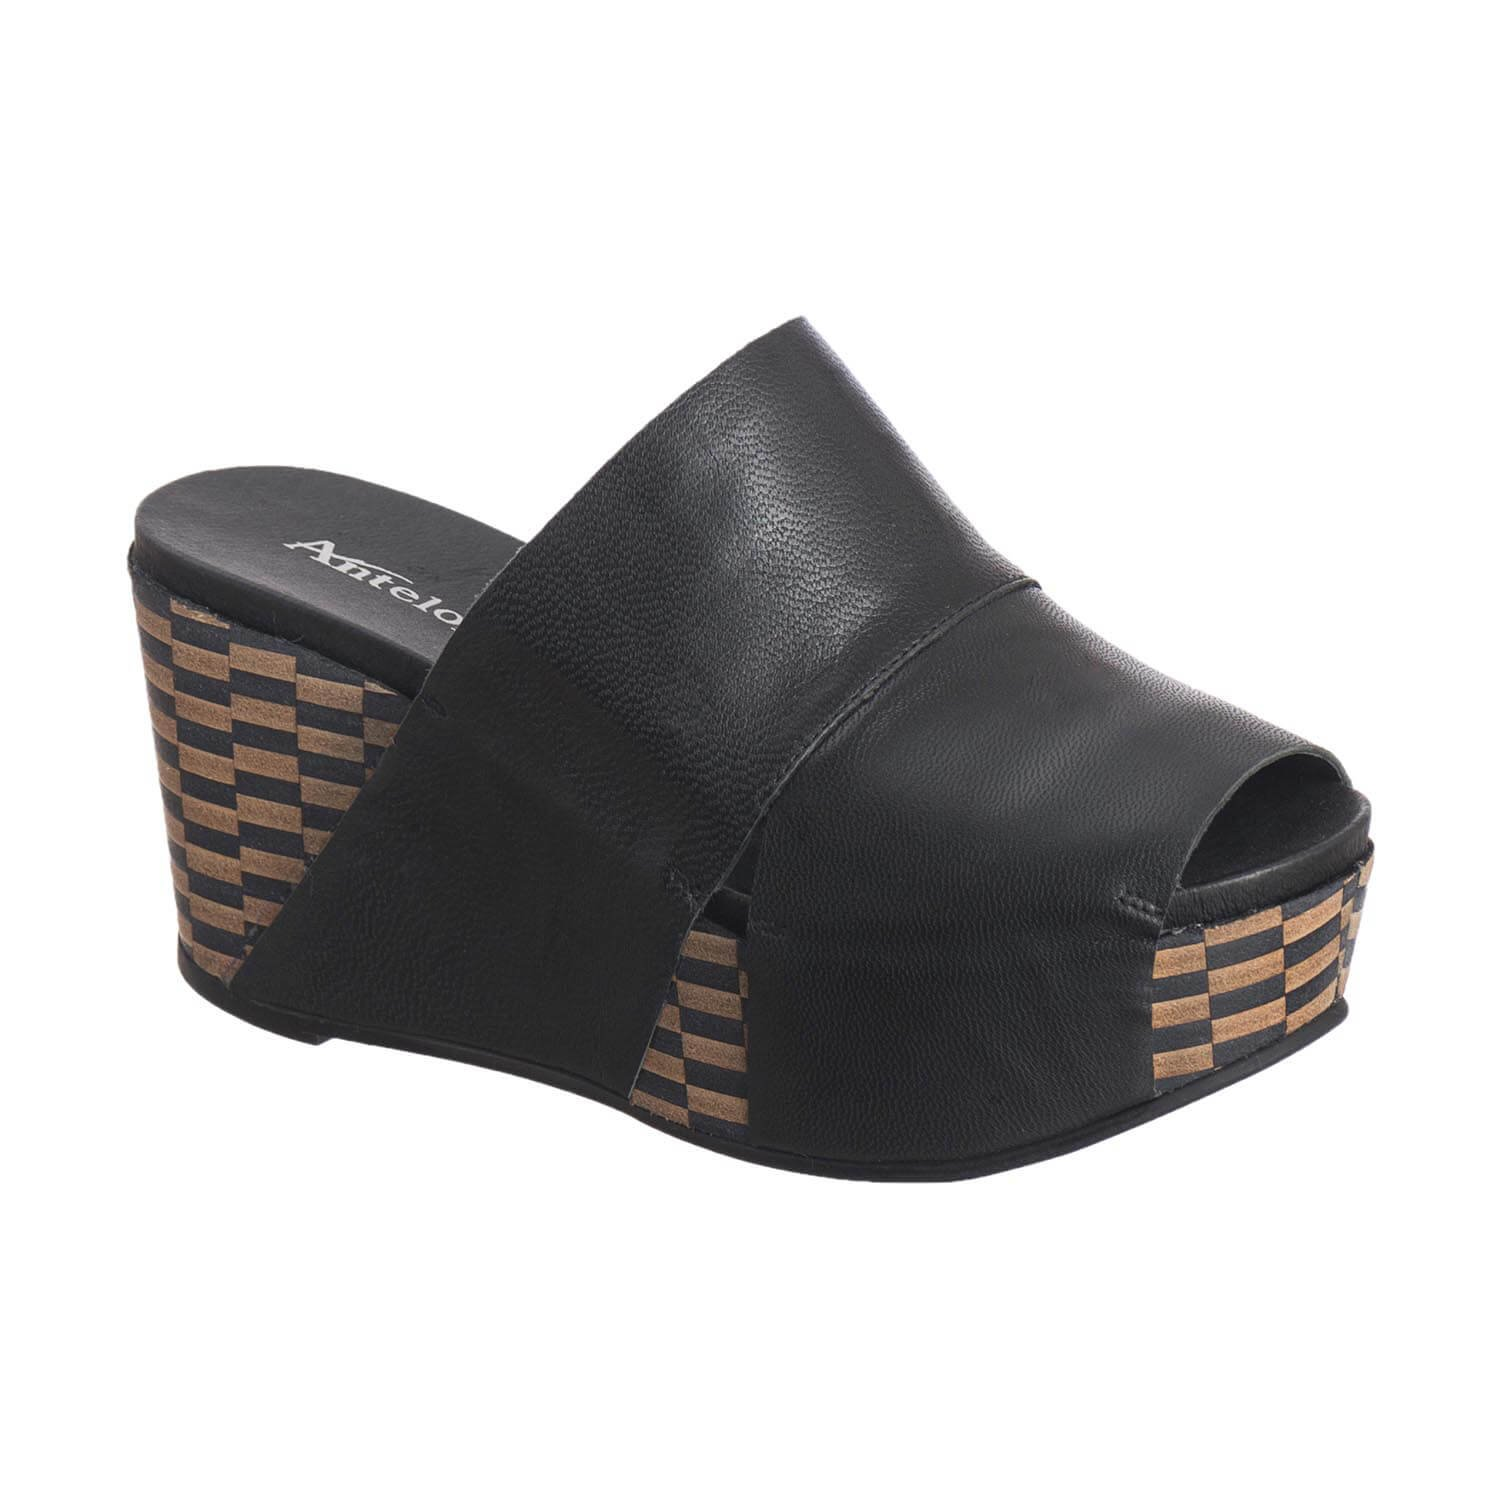 Antelope Women's 869 Black Leather Wide Banded Mule